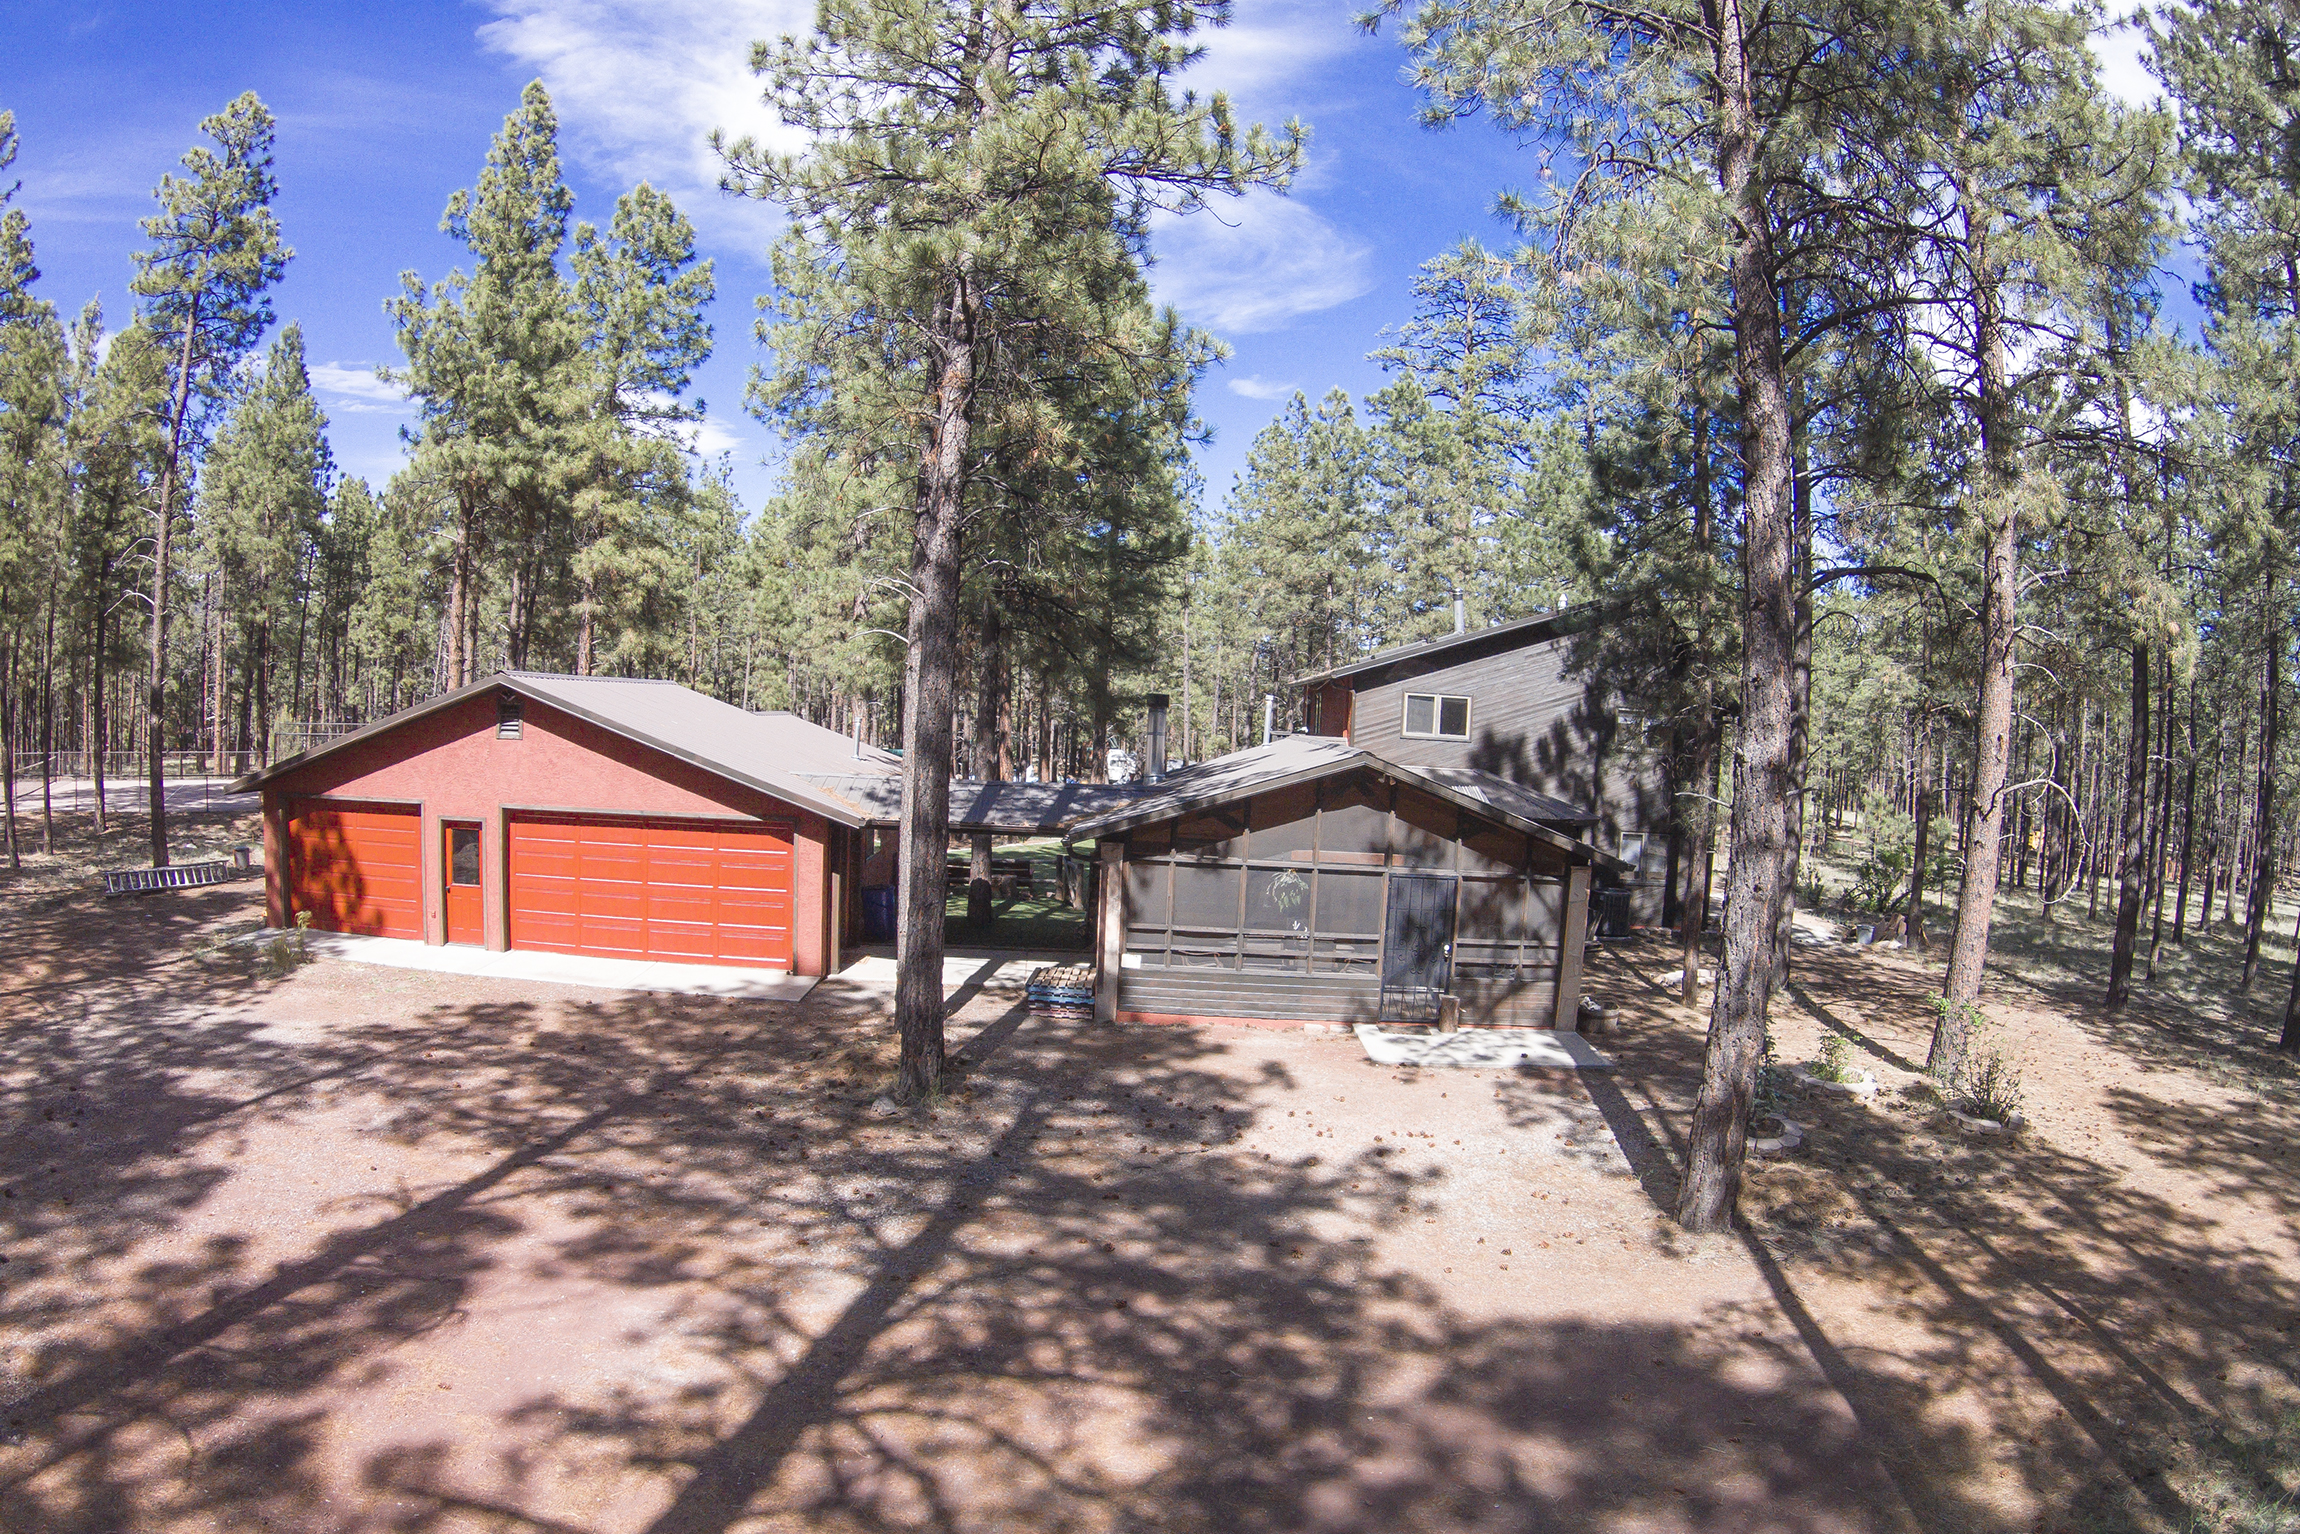 aftm rent canyon flagstaff cabin for all club the pine memories outside at az in cabins